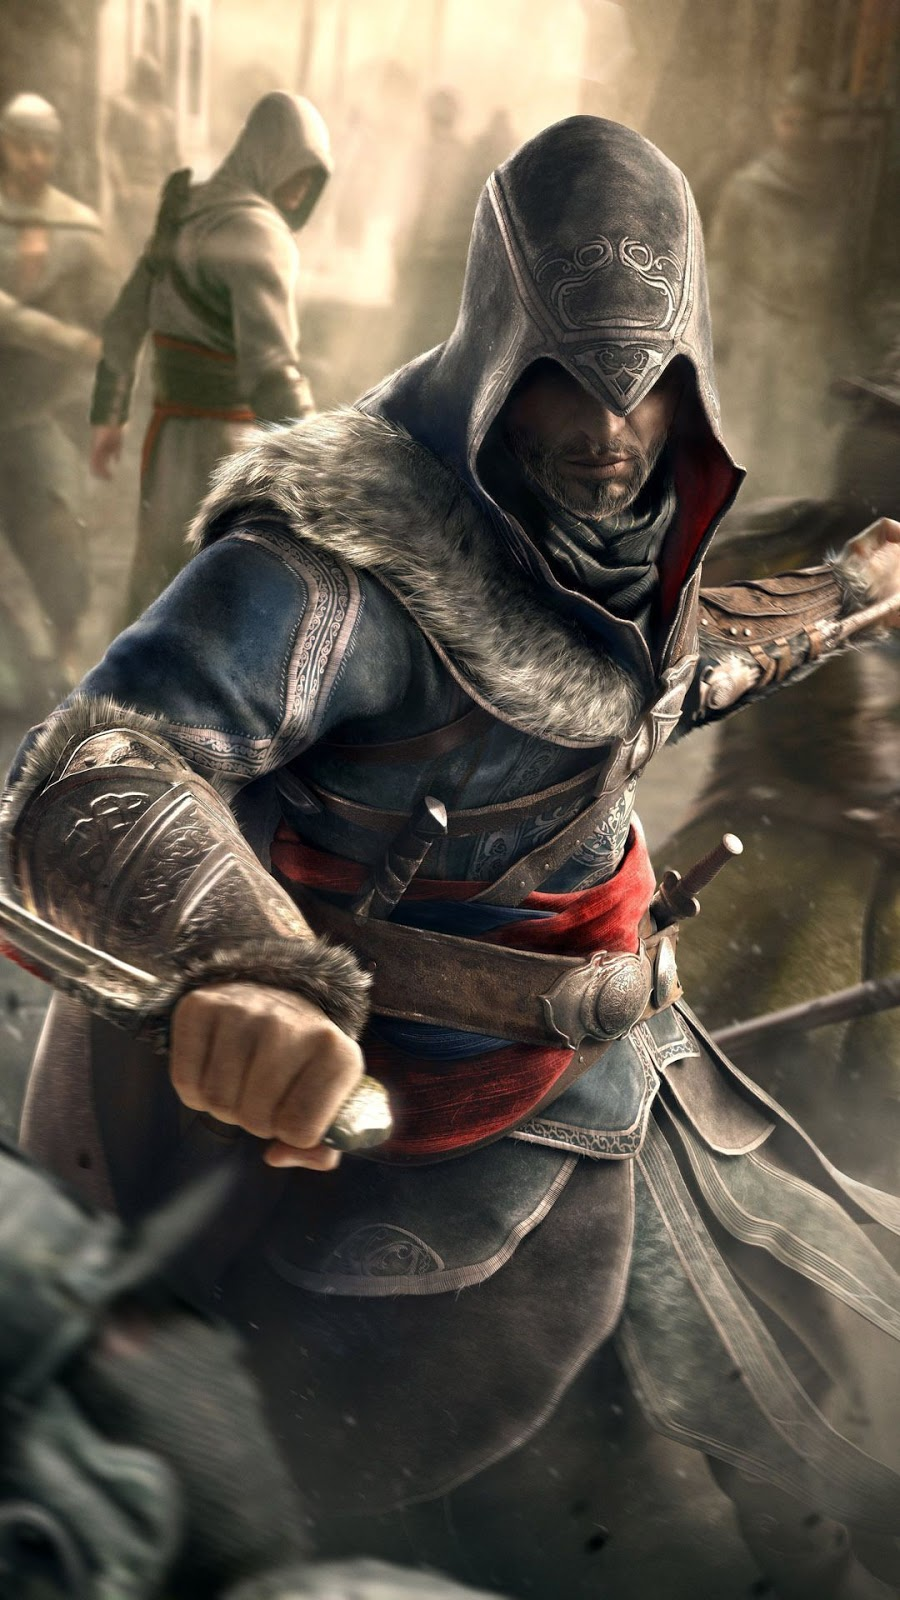 3d Alphabet Cell Phone Wallpaper Assassins Creed Wallpapers Mobile Wallpapers Download